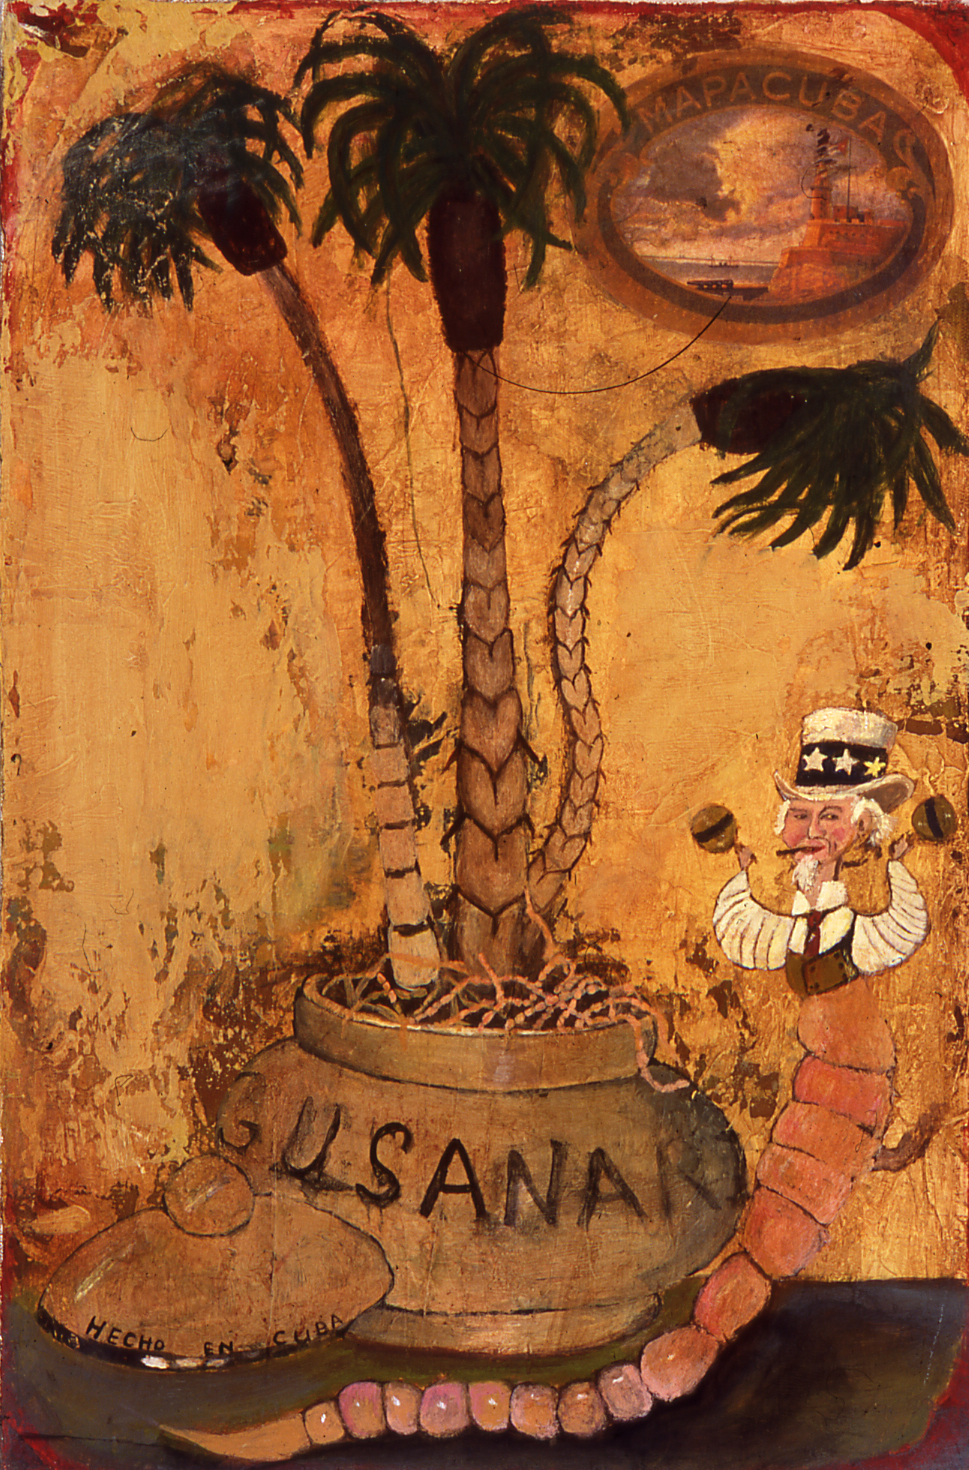 "Gusanaria, Acrylic on canvas, 18"" x12"", 2001"